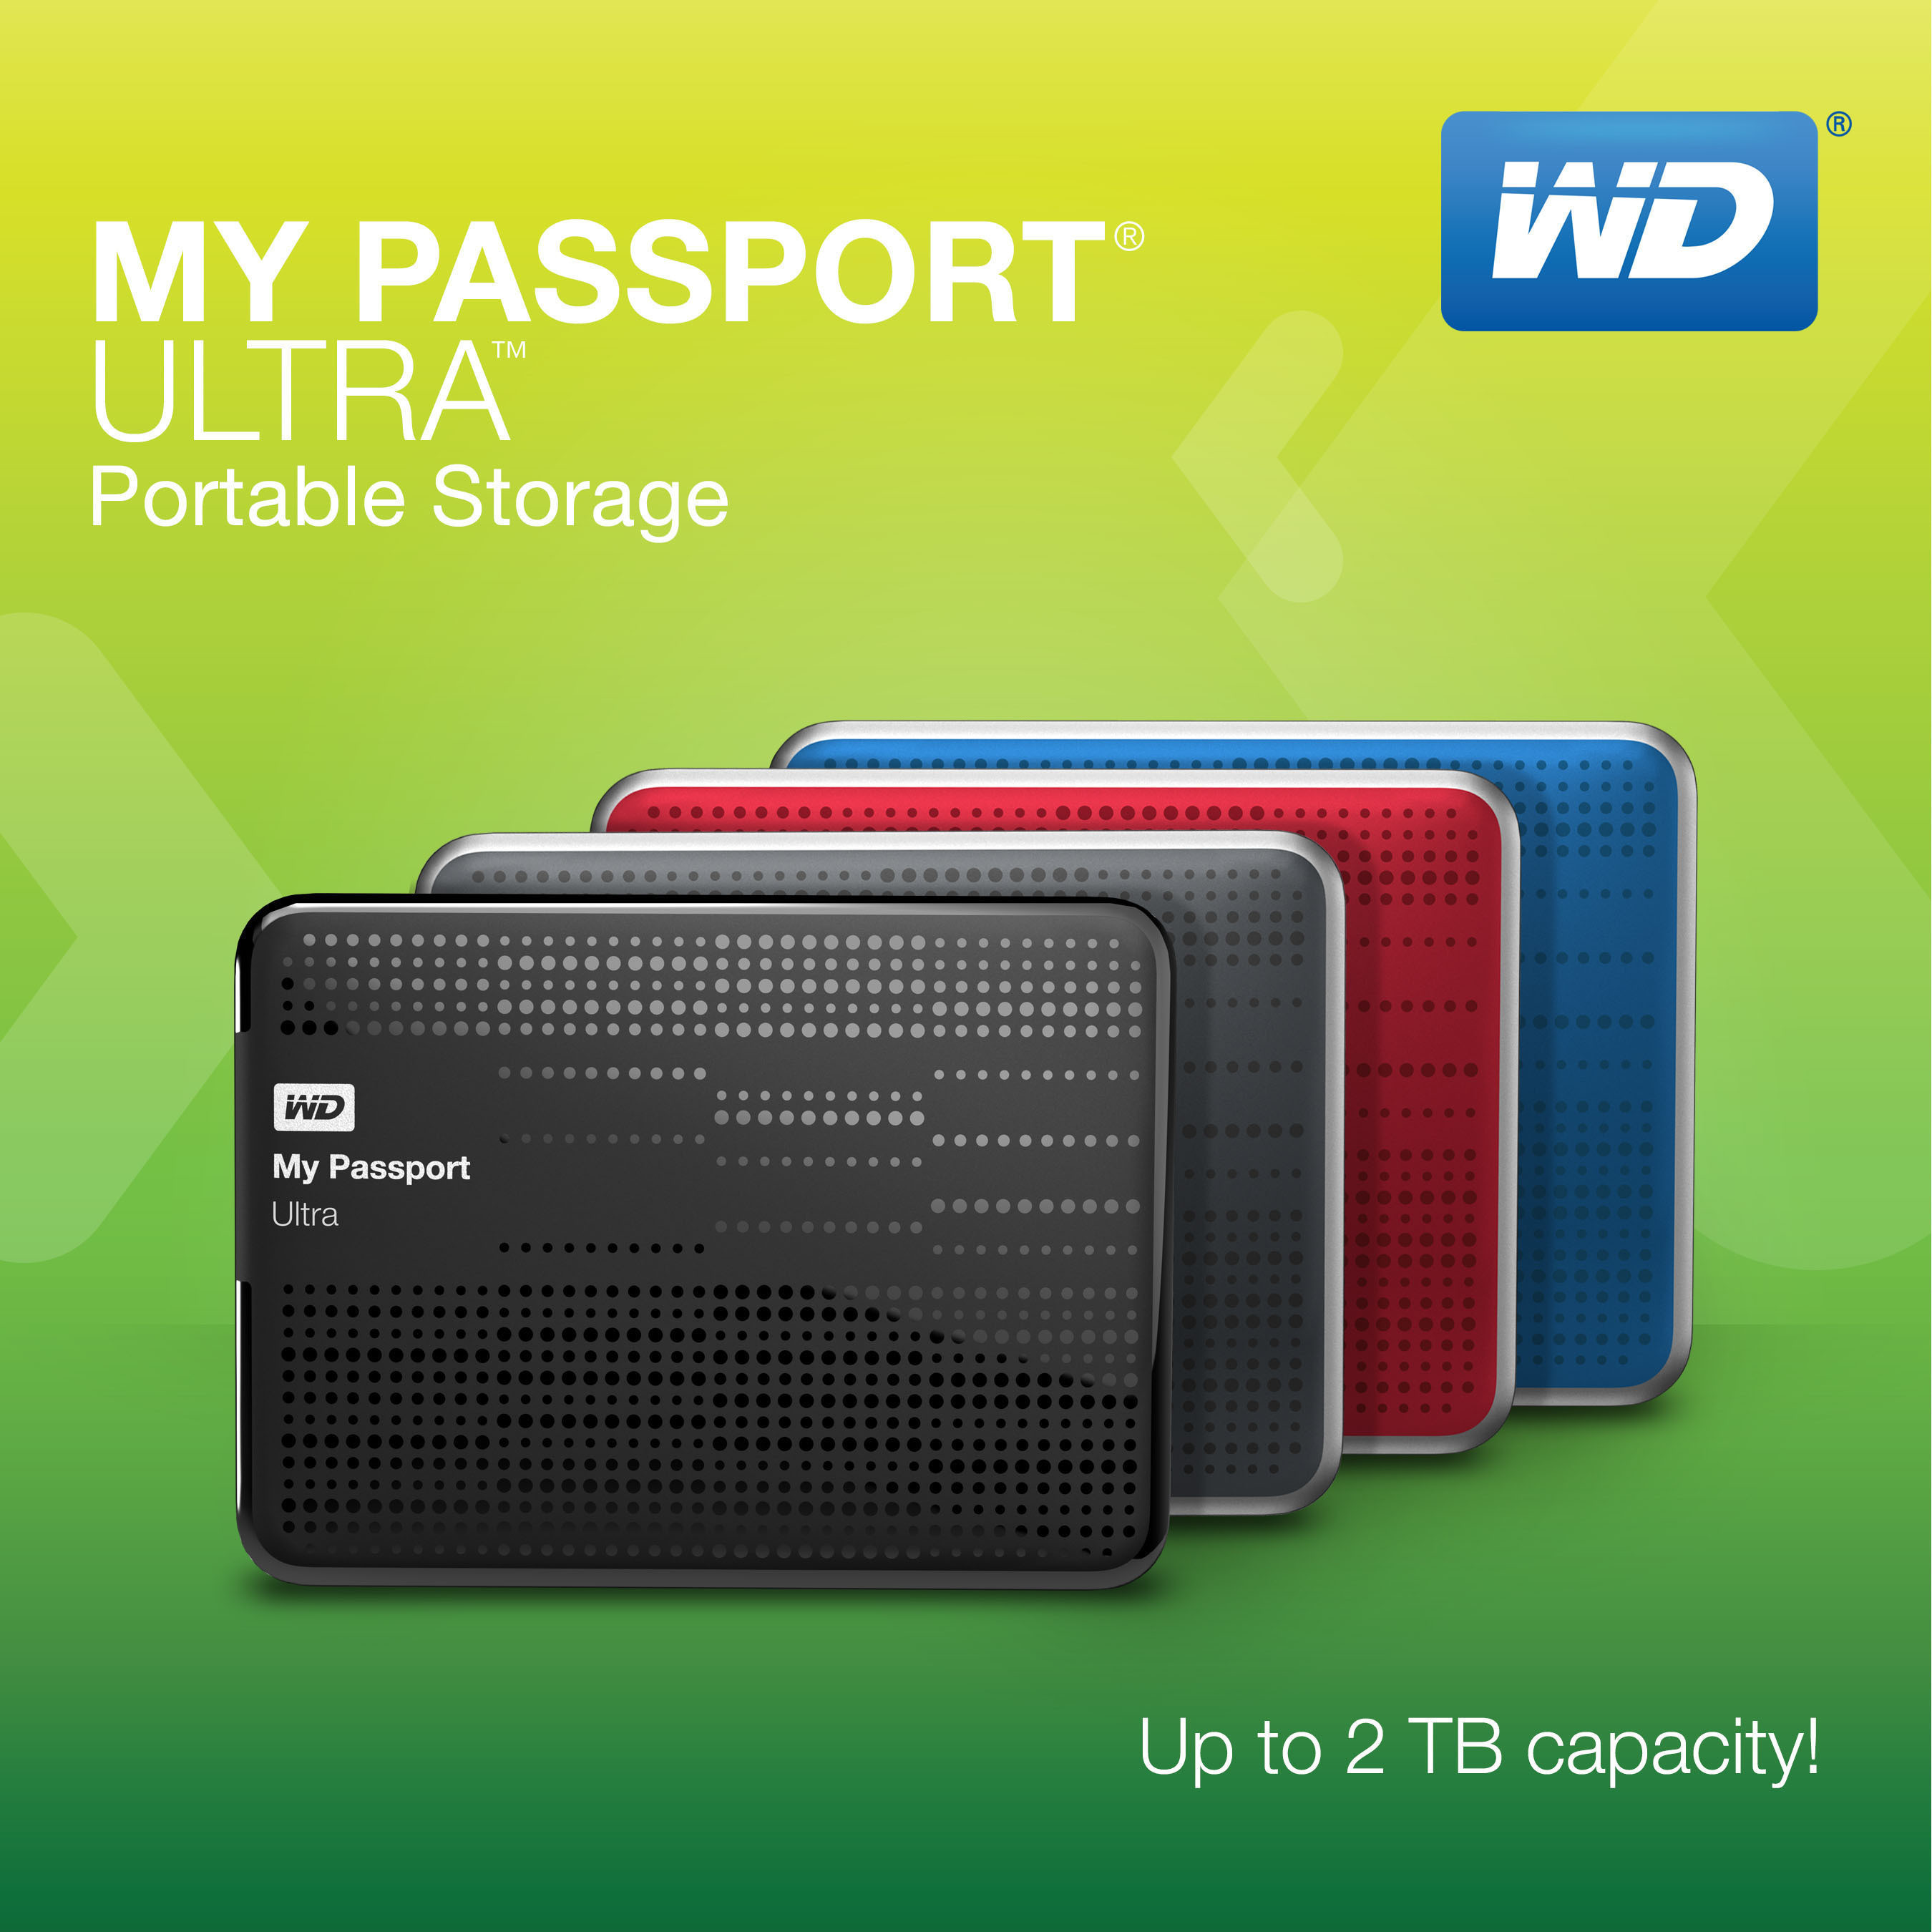 wd announces my passport ultra techpowerup. Black Bedroom Furniture Sets. Home Design Ideas